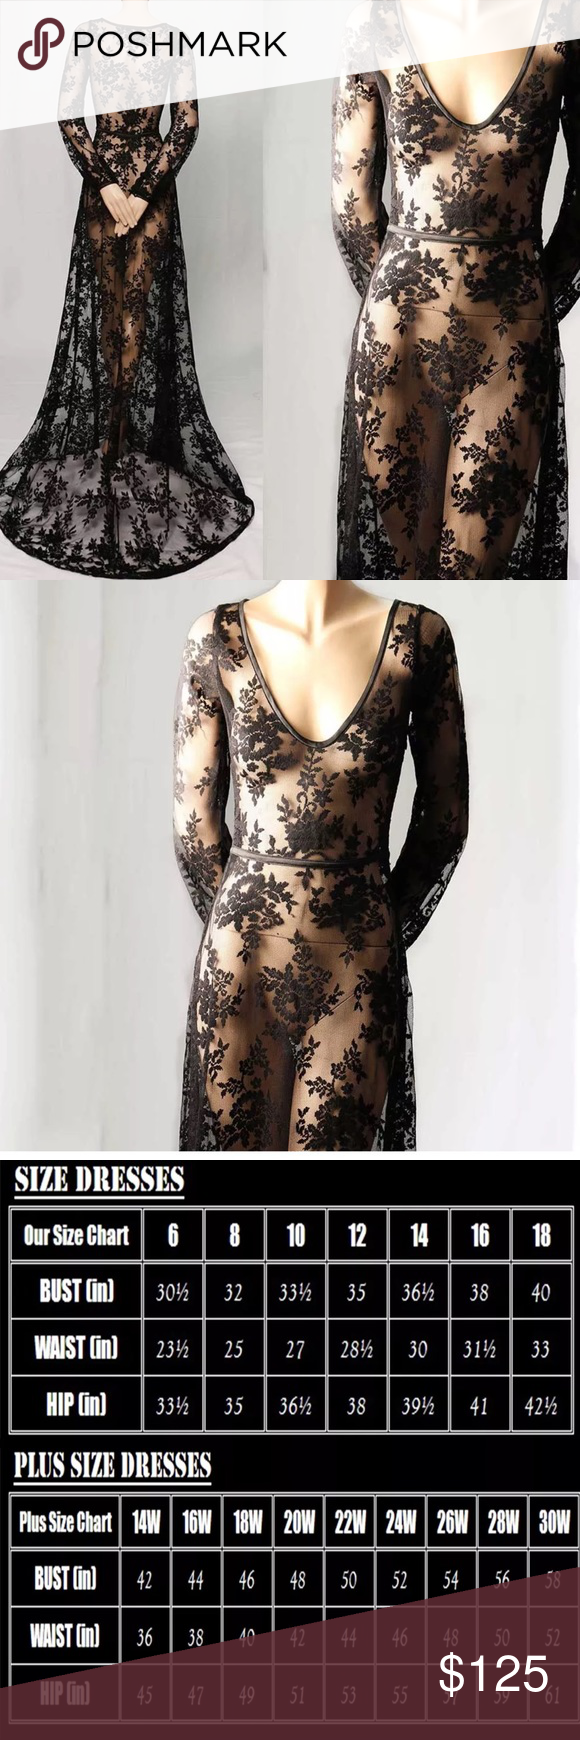 Long sleeve black flower see through dress size is the same as i